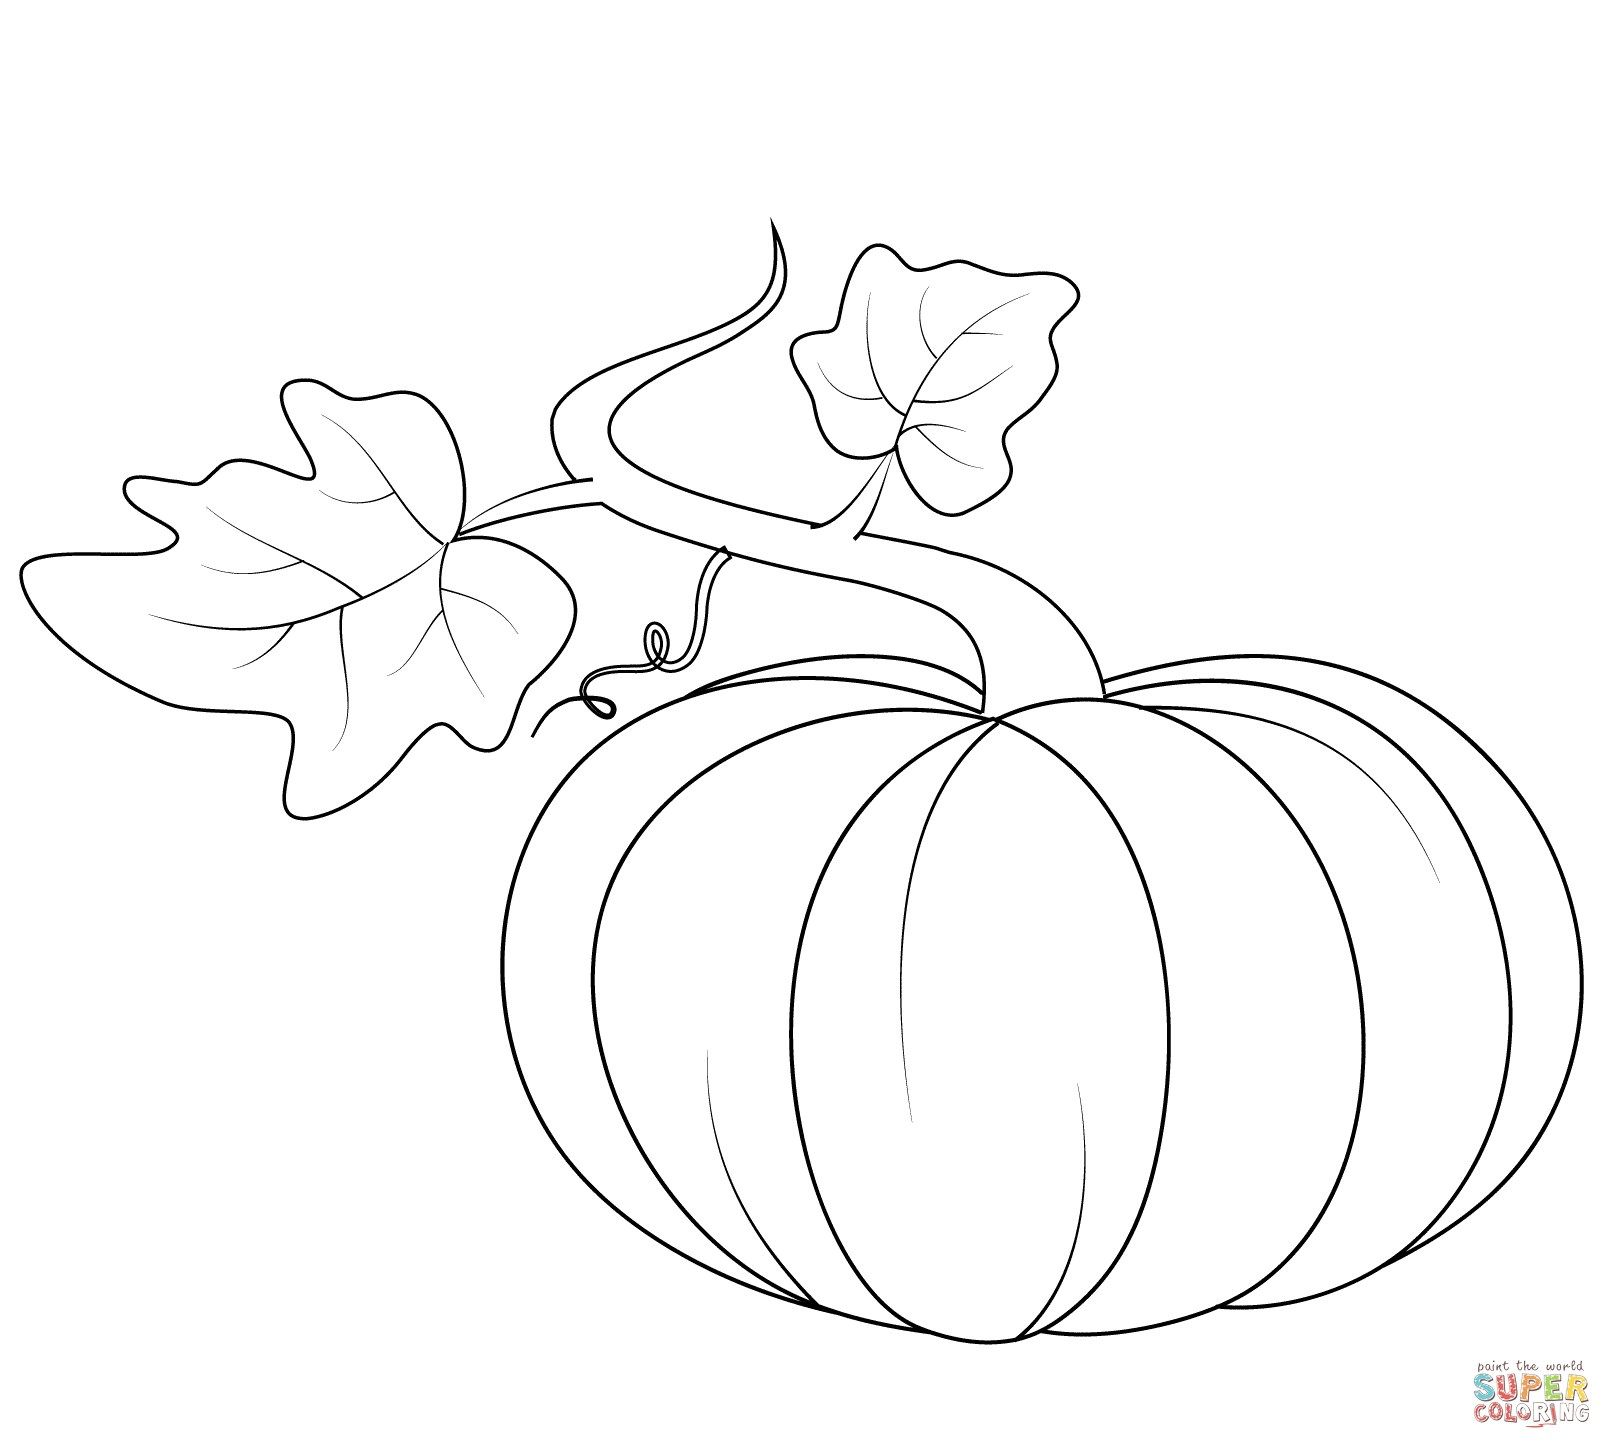 22 Creative Photo Of Pumpkin Coloring Pages Davemelillo Com Pumpkin Coloring Pages Leaf Coloring Page Fall Coloring Pages